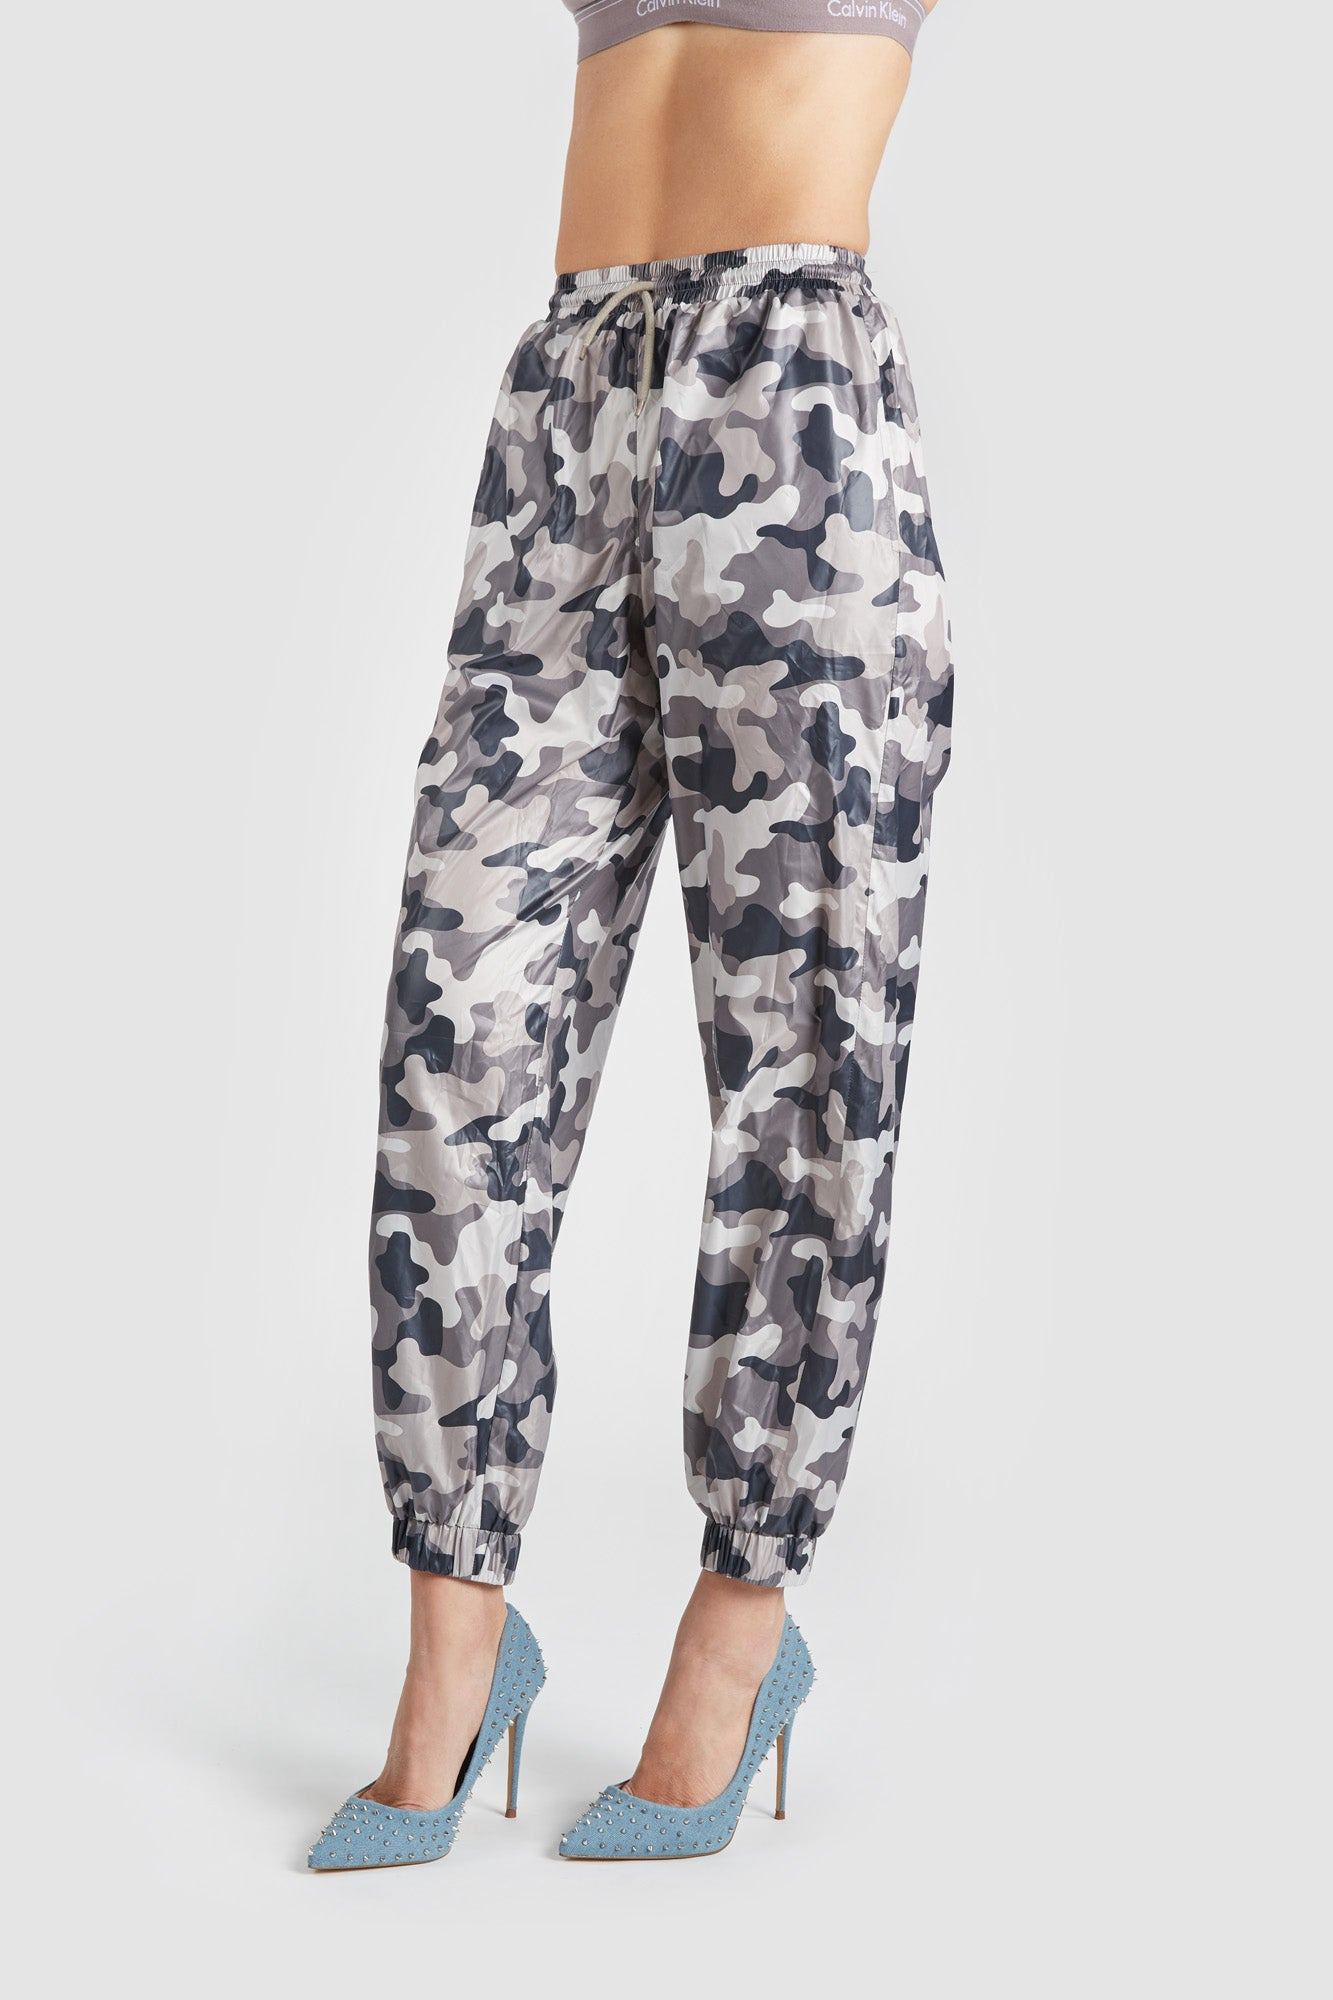 The Camodelic Track Pant